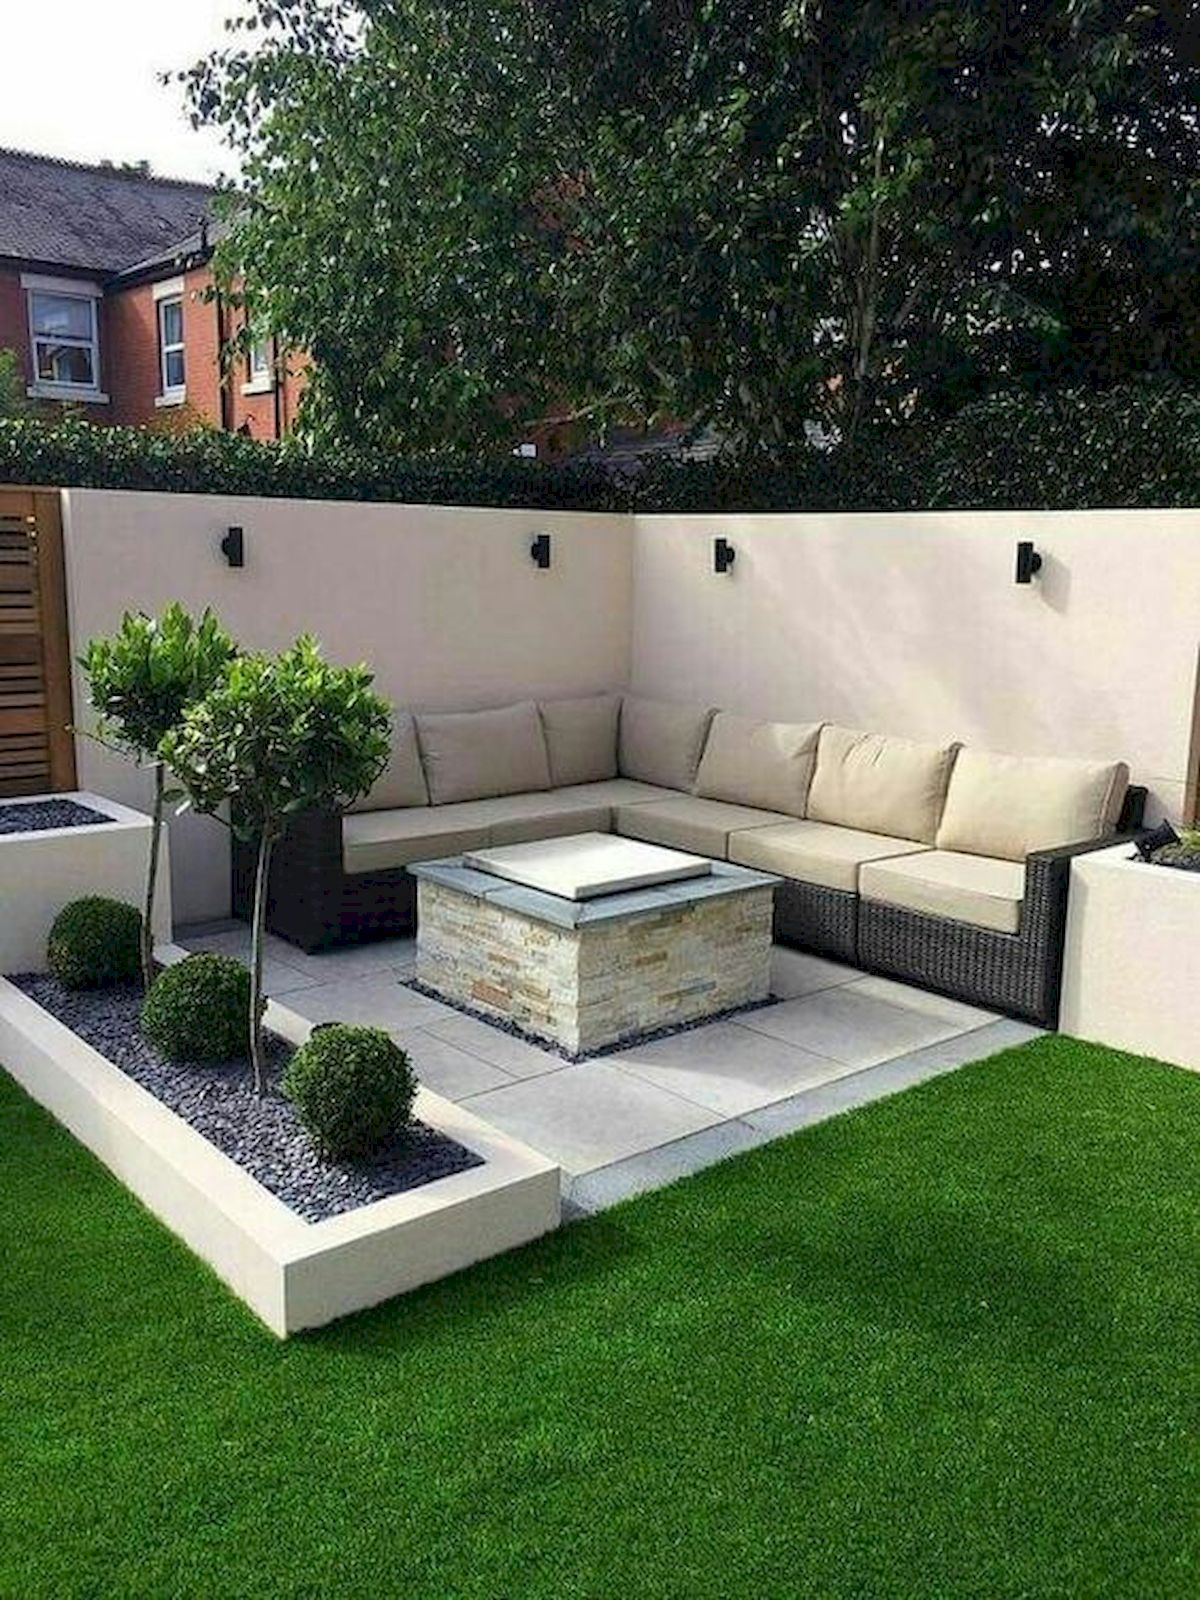 awesome built in planter ideas to upgrade your outdoor space also best out doors images home decor build house gardens rh pinterest